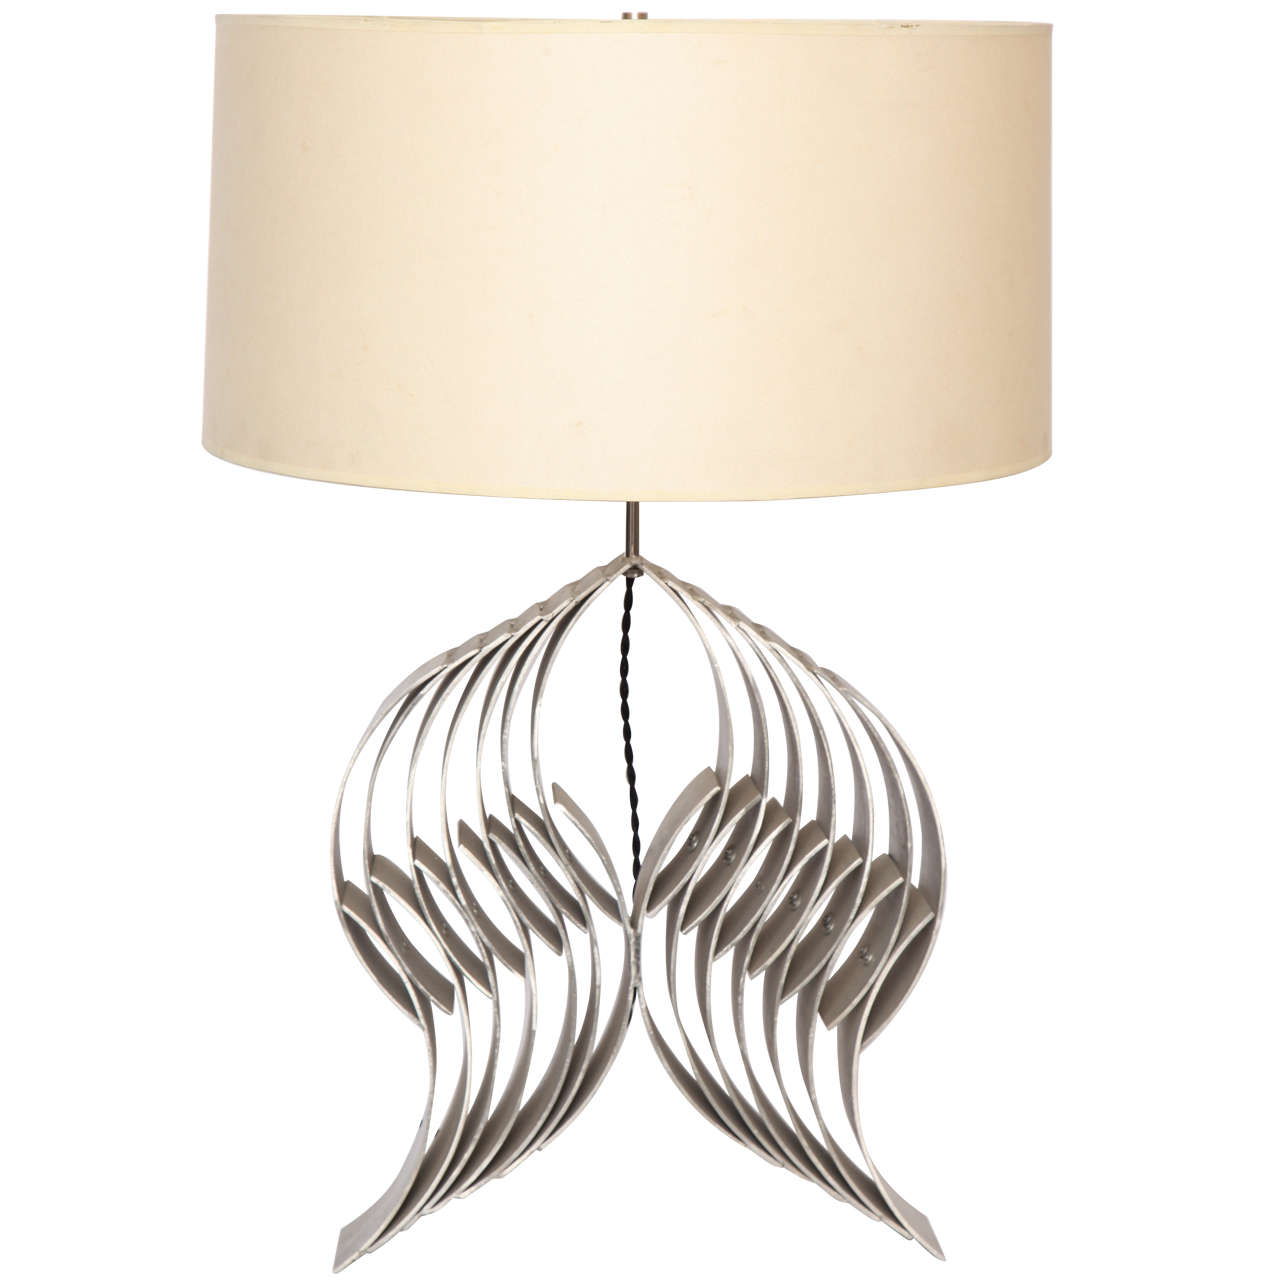 1960s Sculptural Table Lamp Hand Crafted of Aluminium